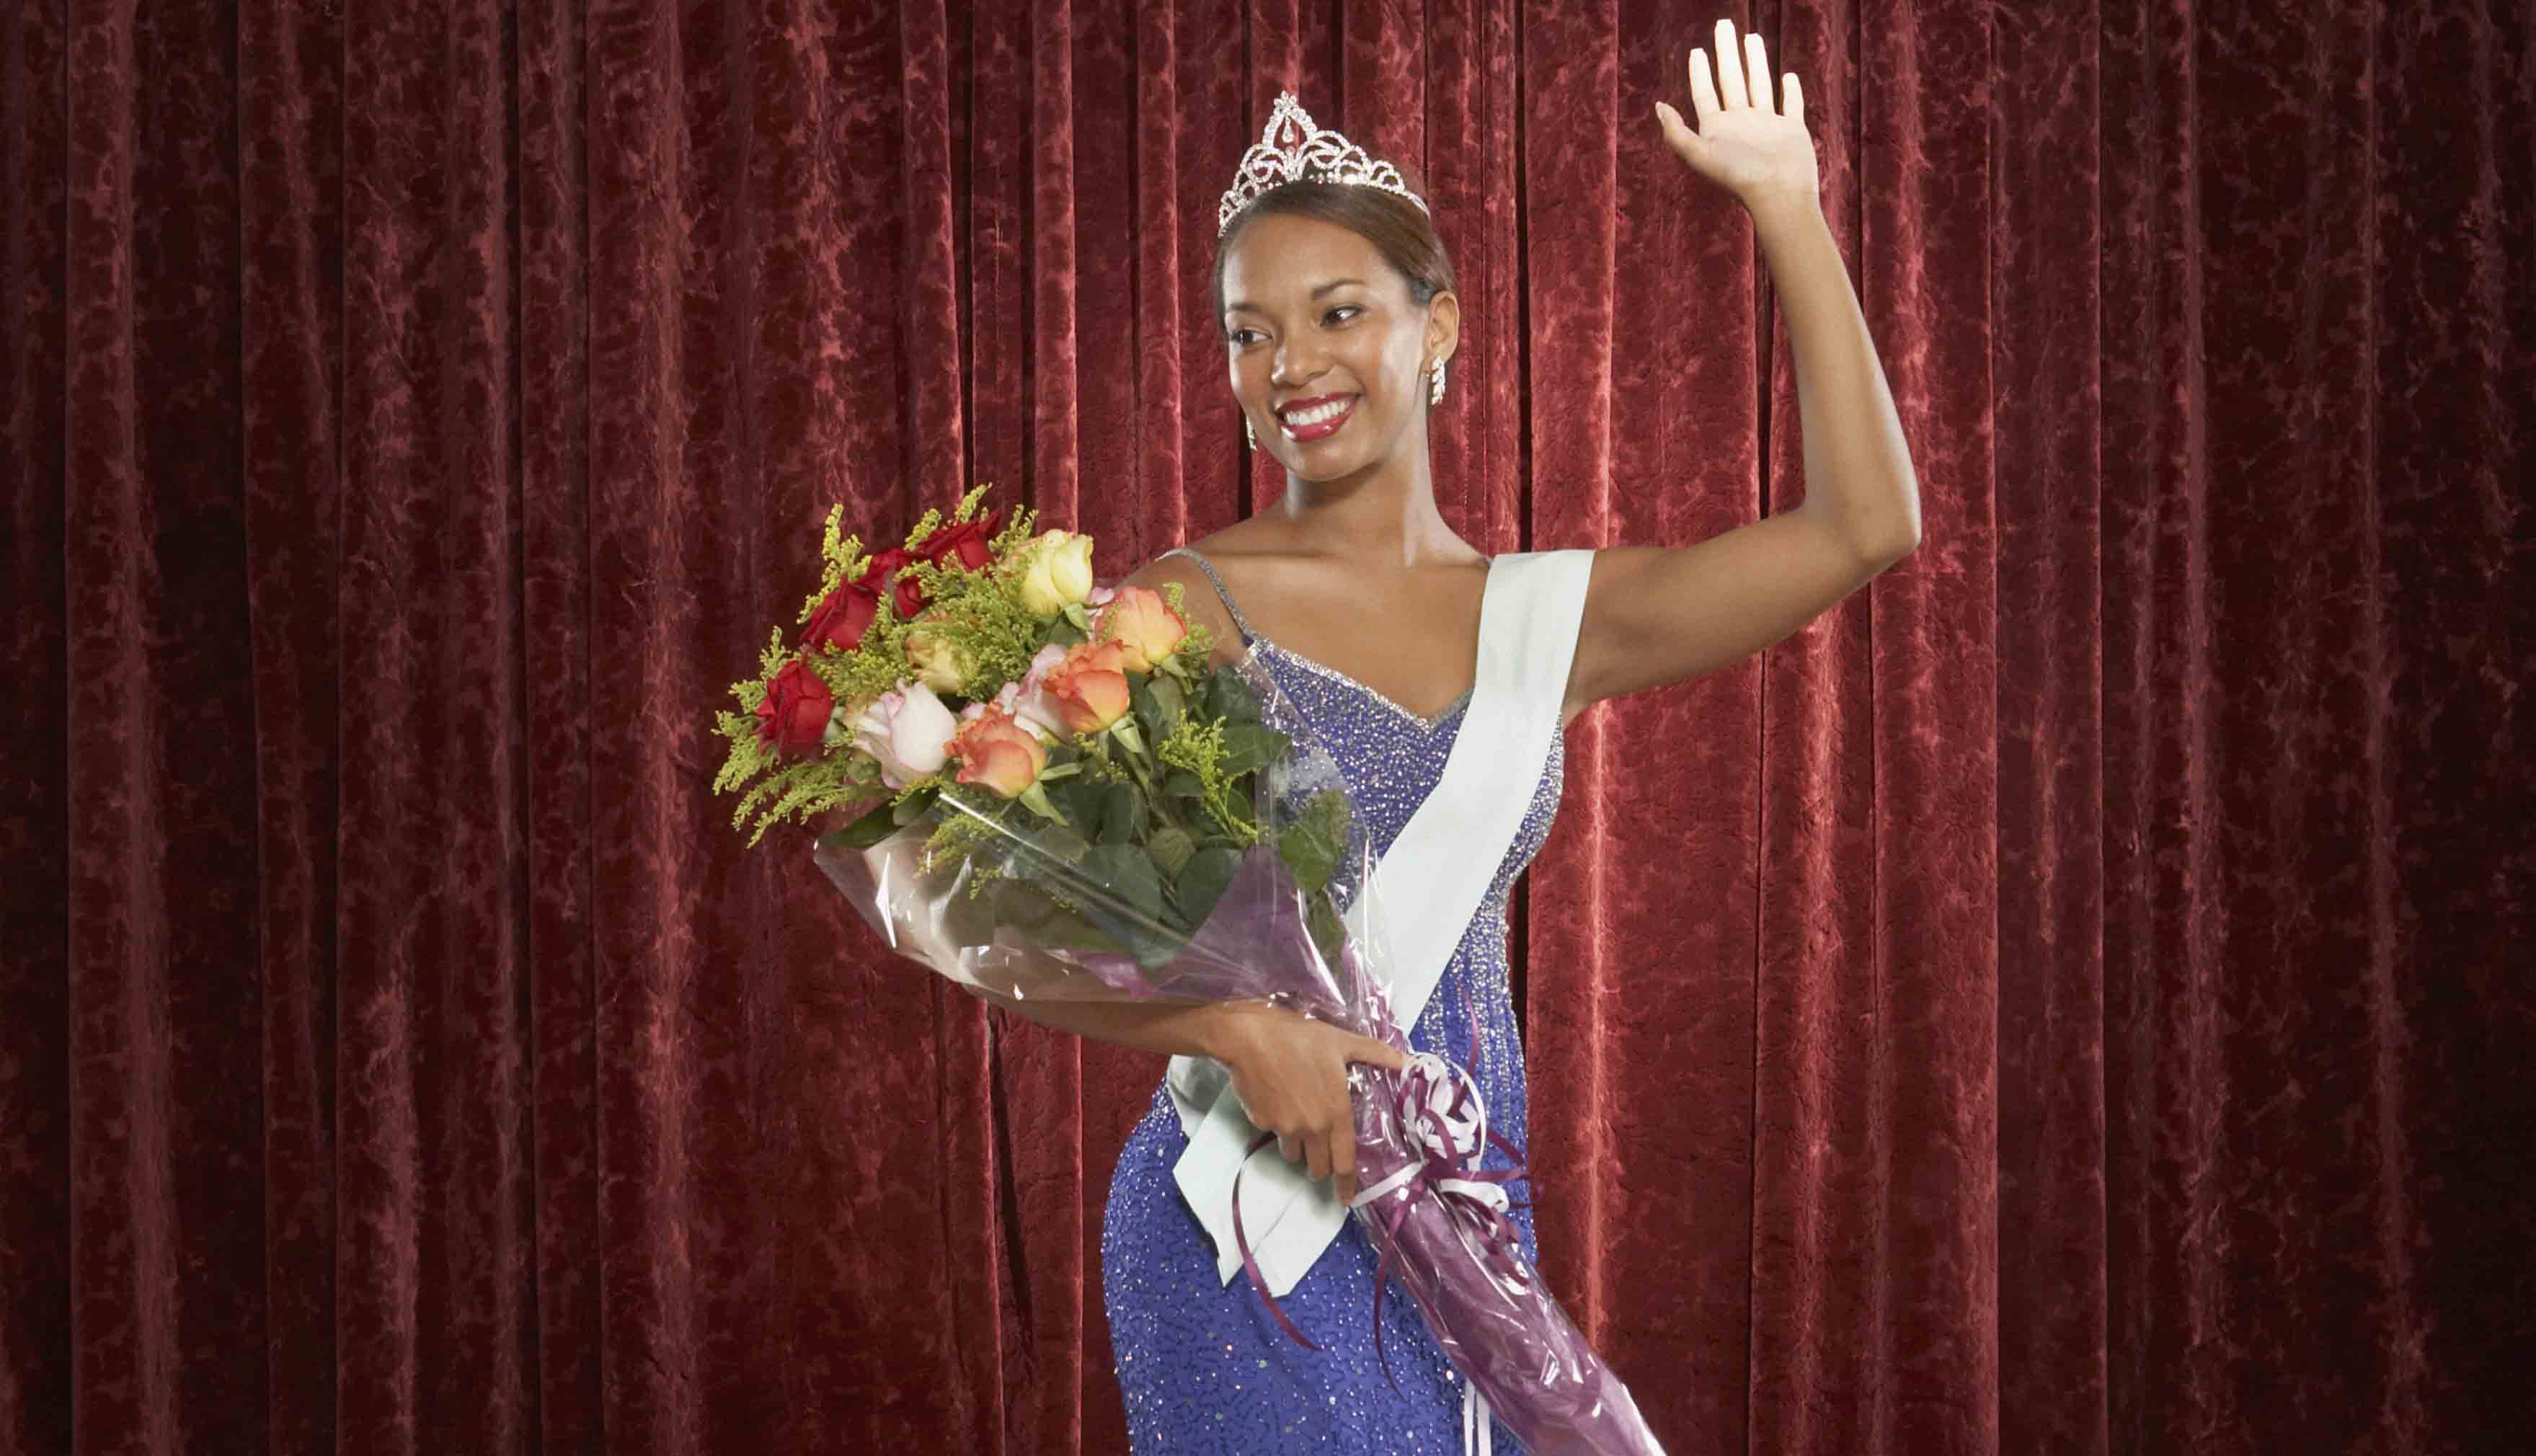 Don't turn hiring into a beauty pageant